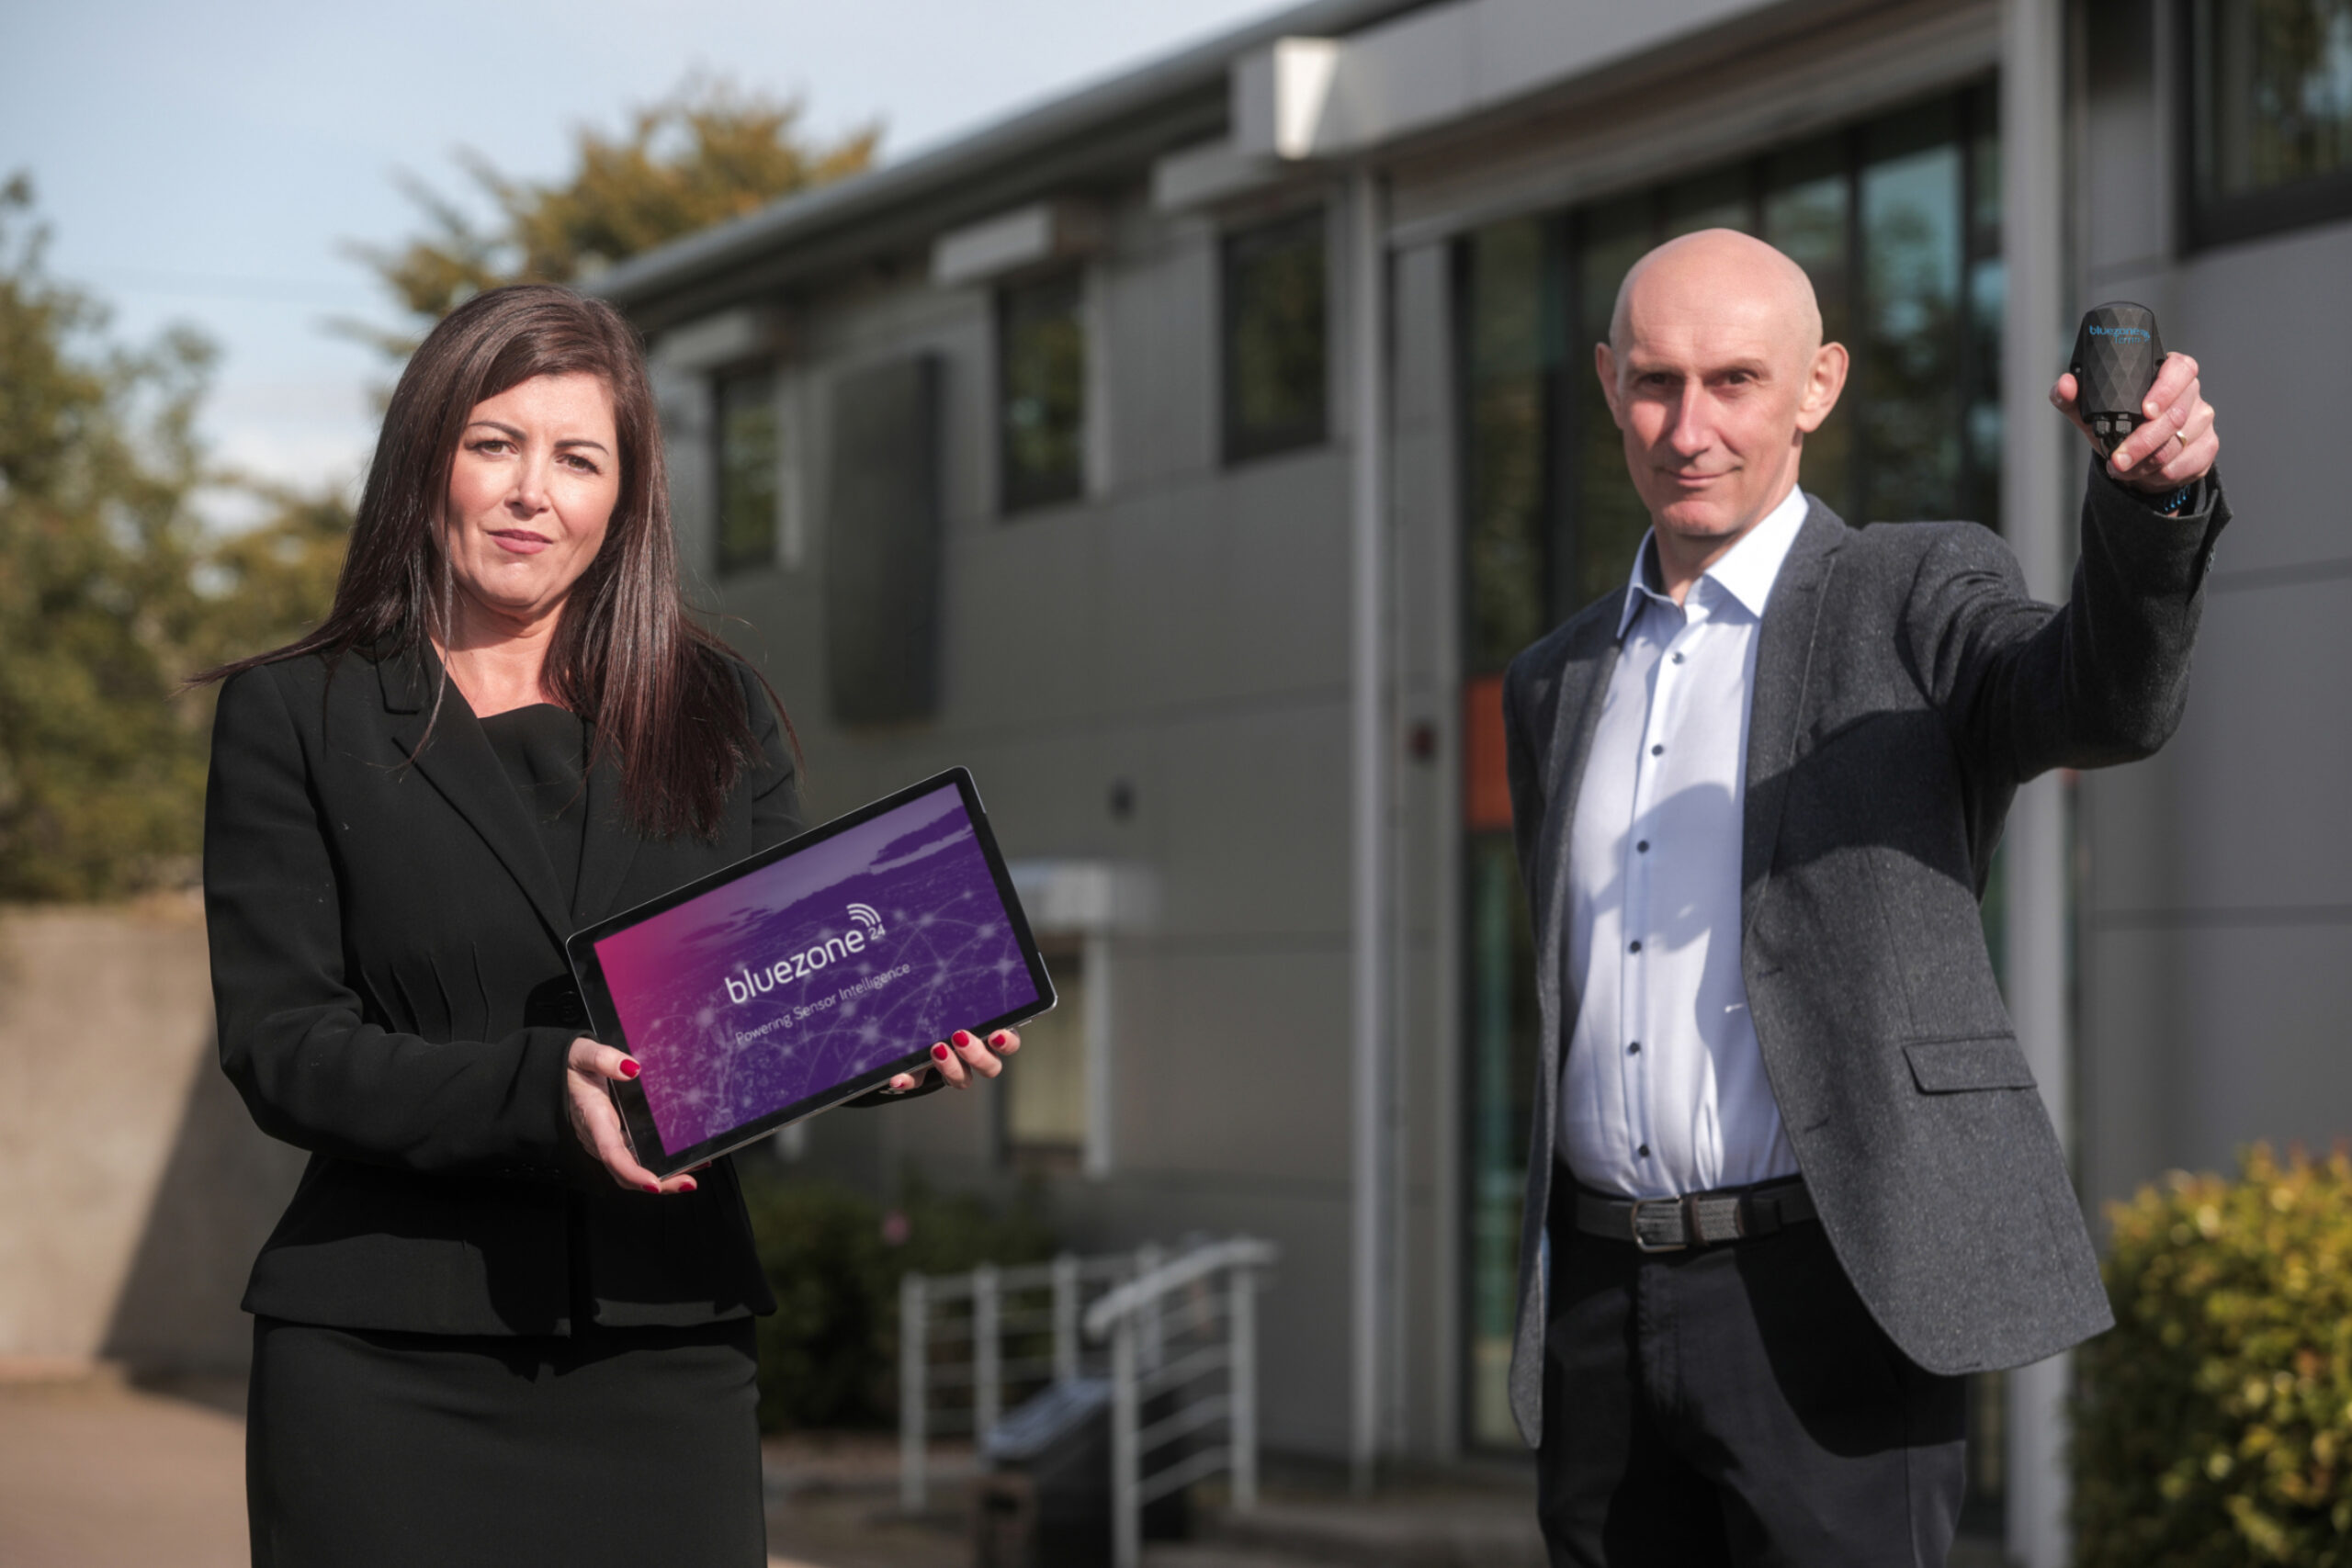 Newry's Bluezone Technologies invests over £685k in sensor technology to combat Legionella outbreaks following Covid-19 lockdown - Newry company Bluezone